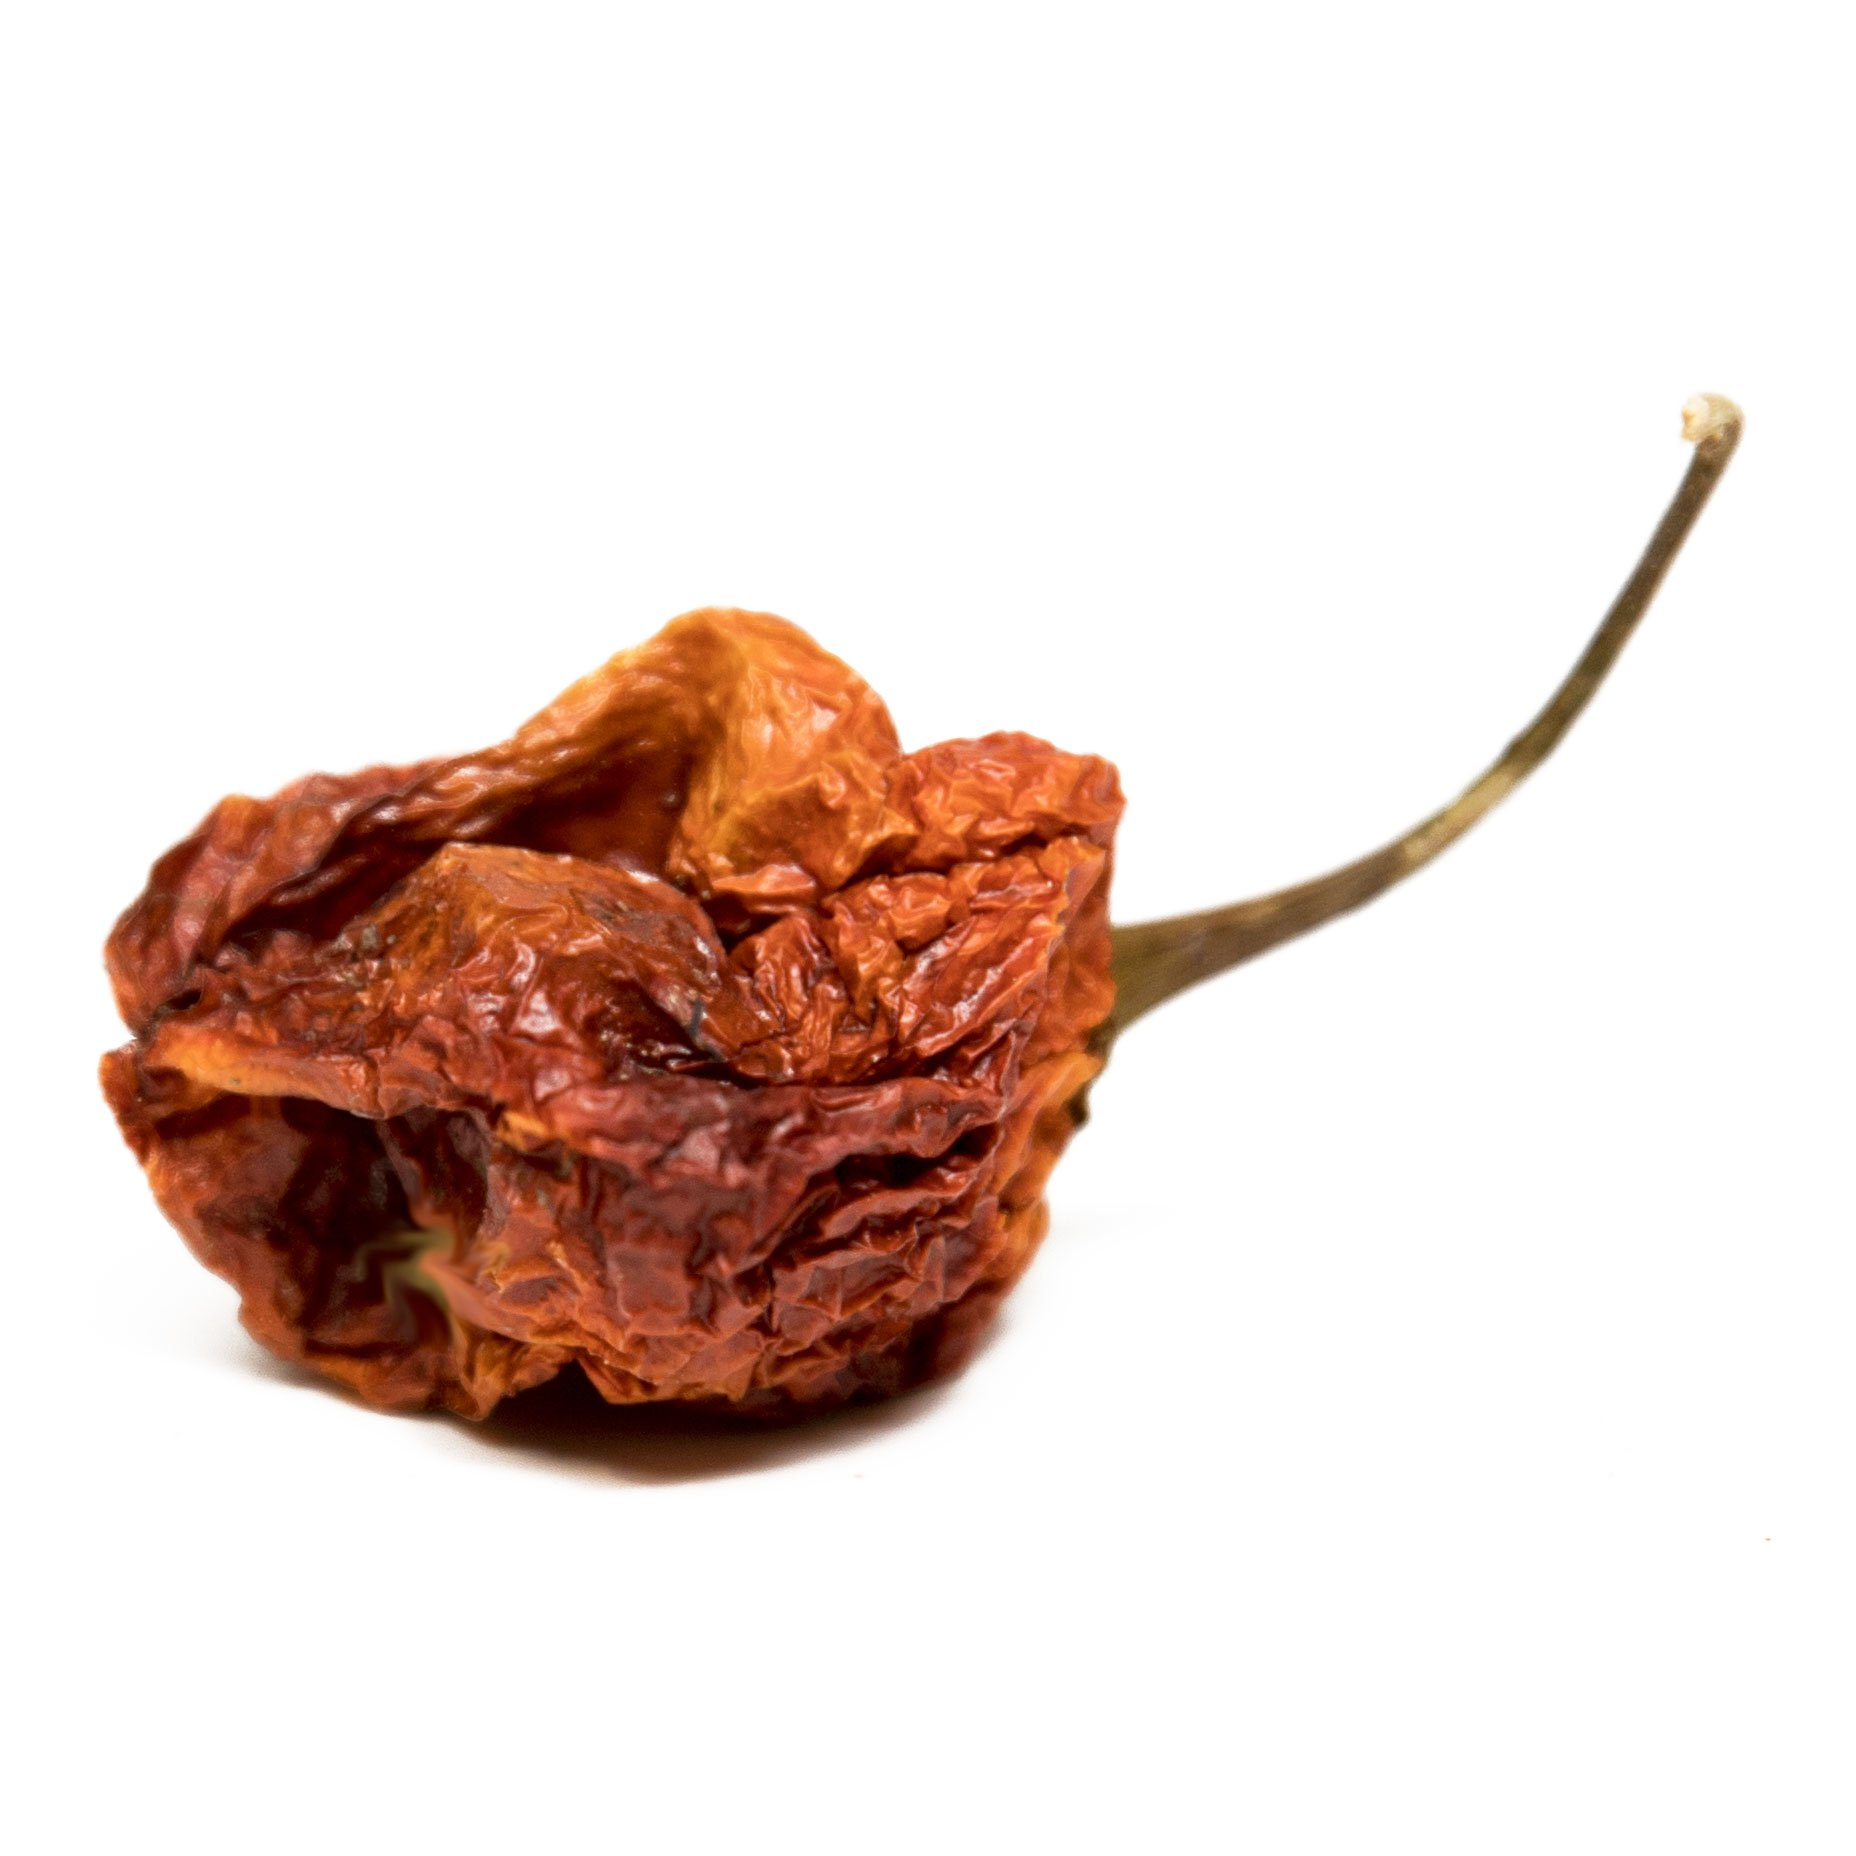 Carolina Reaper Peppers - Oven Dried (2 Oz) by Sonoran Spice (Image #2)